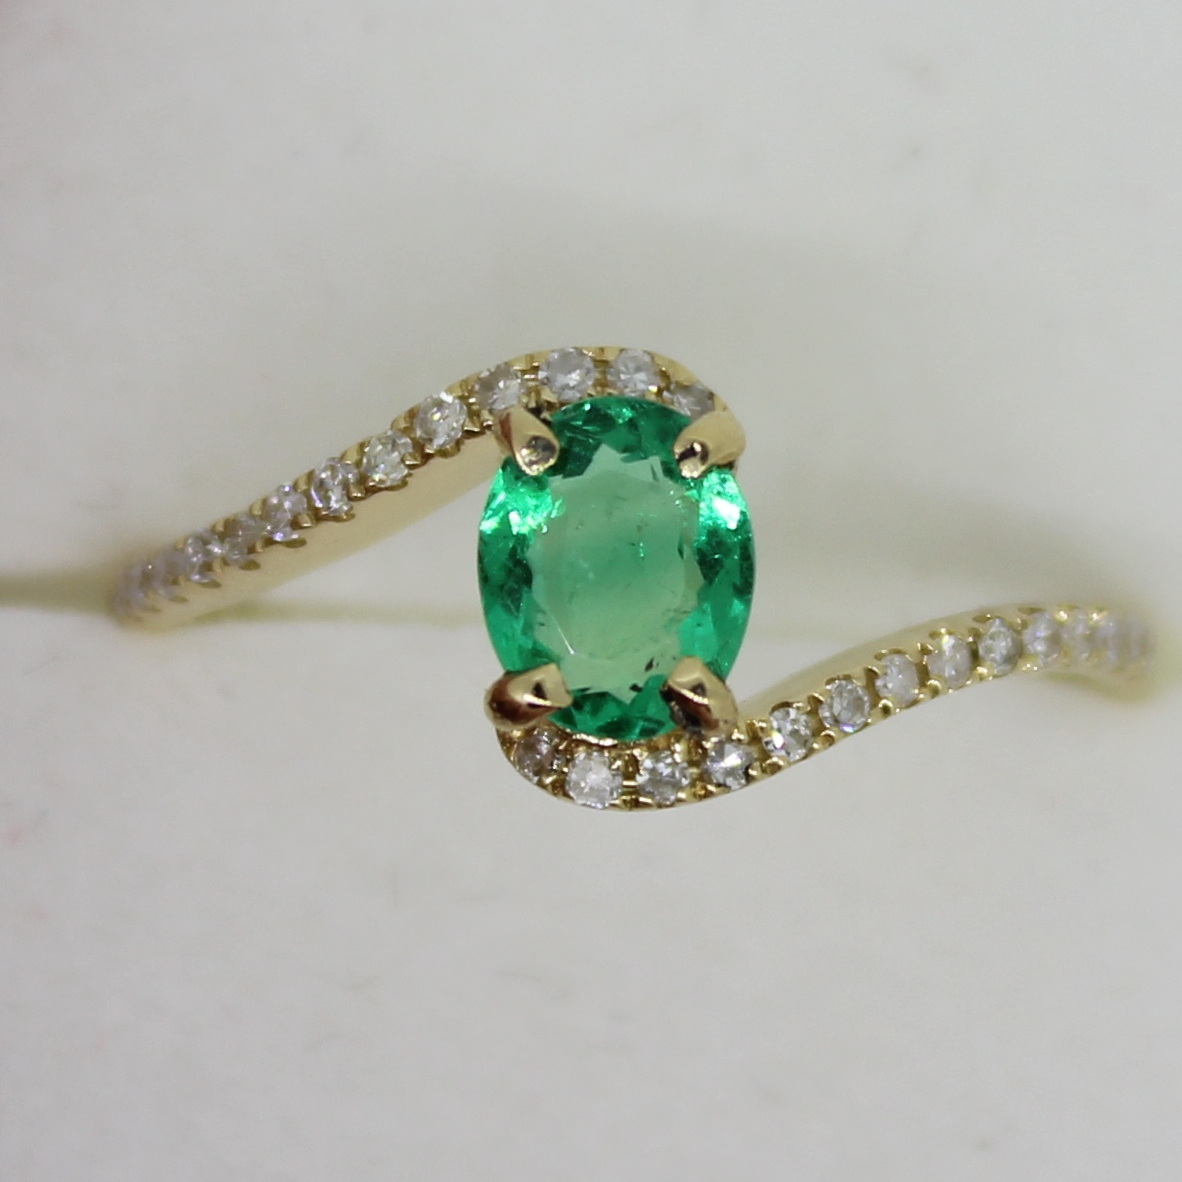 rings rose en rg jewellery paeonia emerald ring gold jewelry